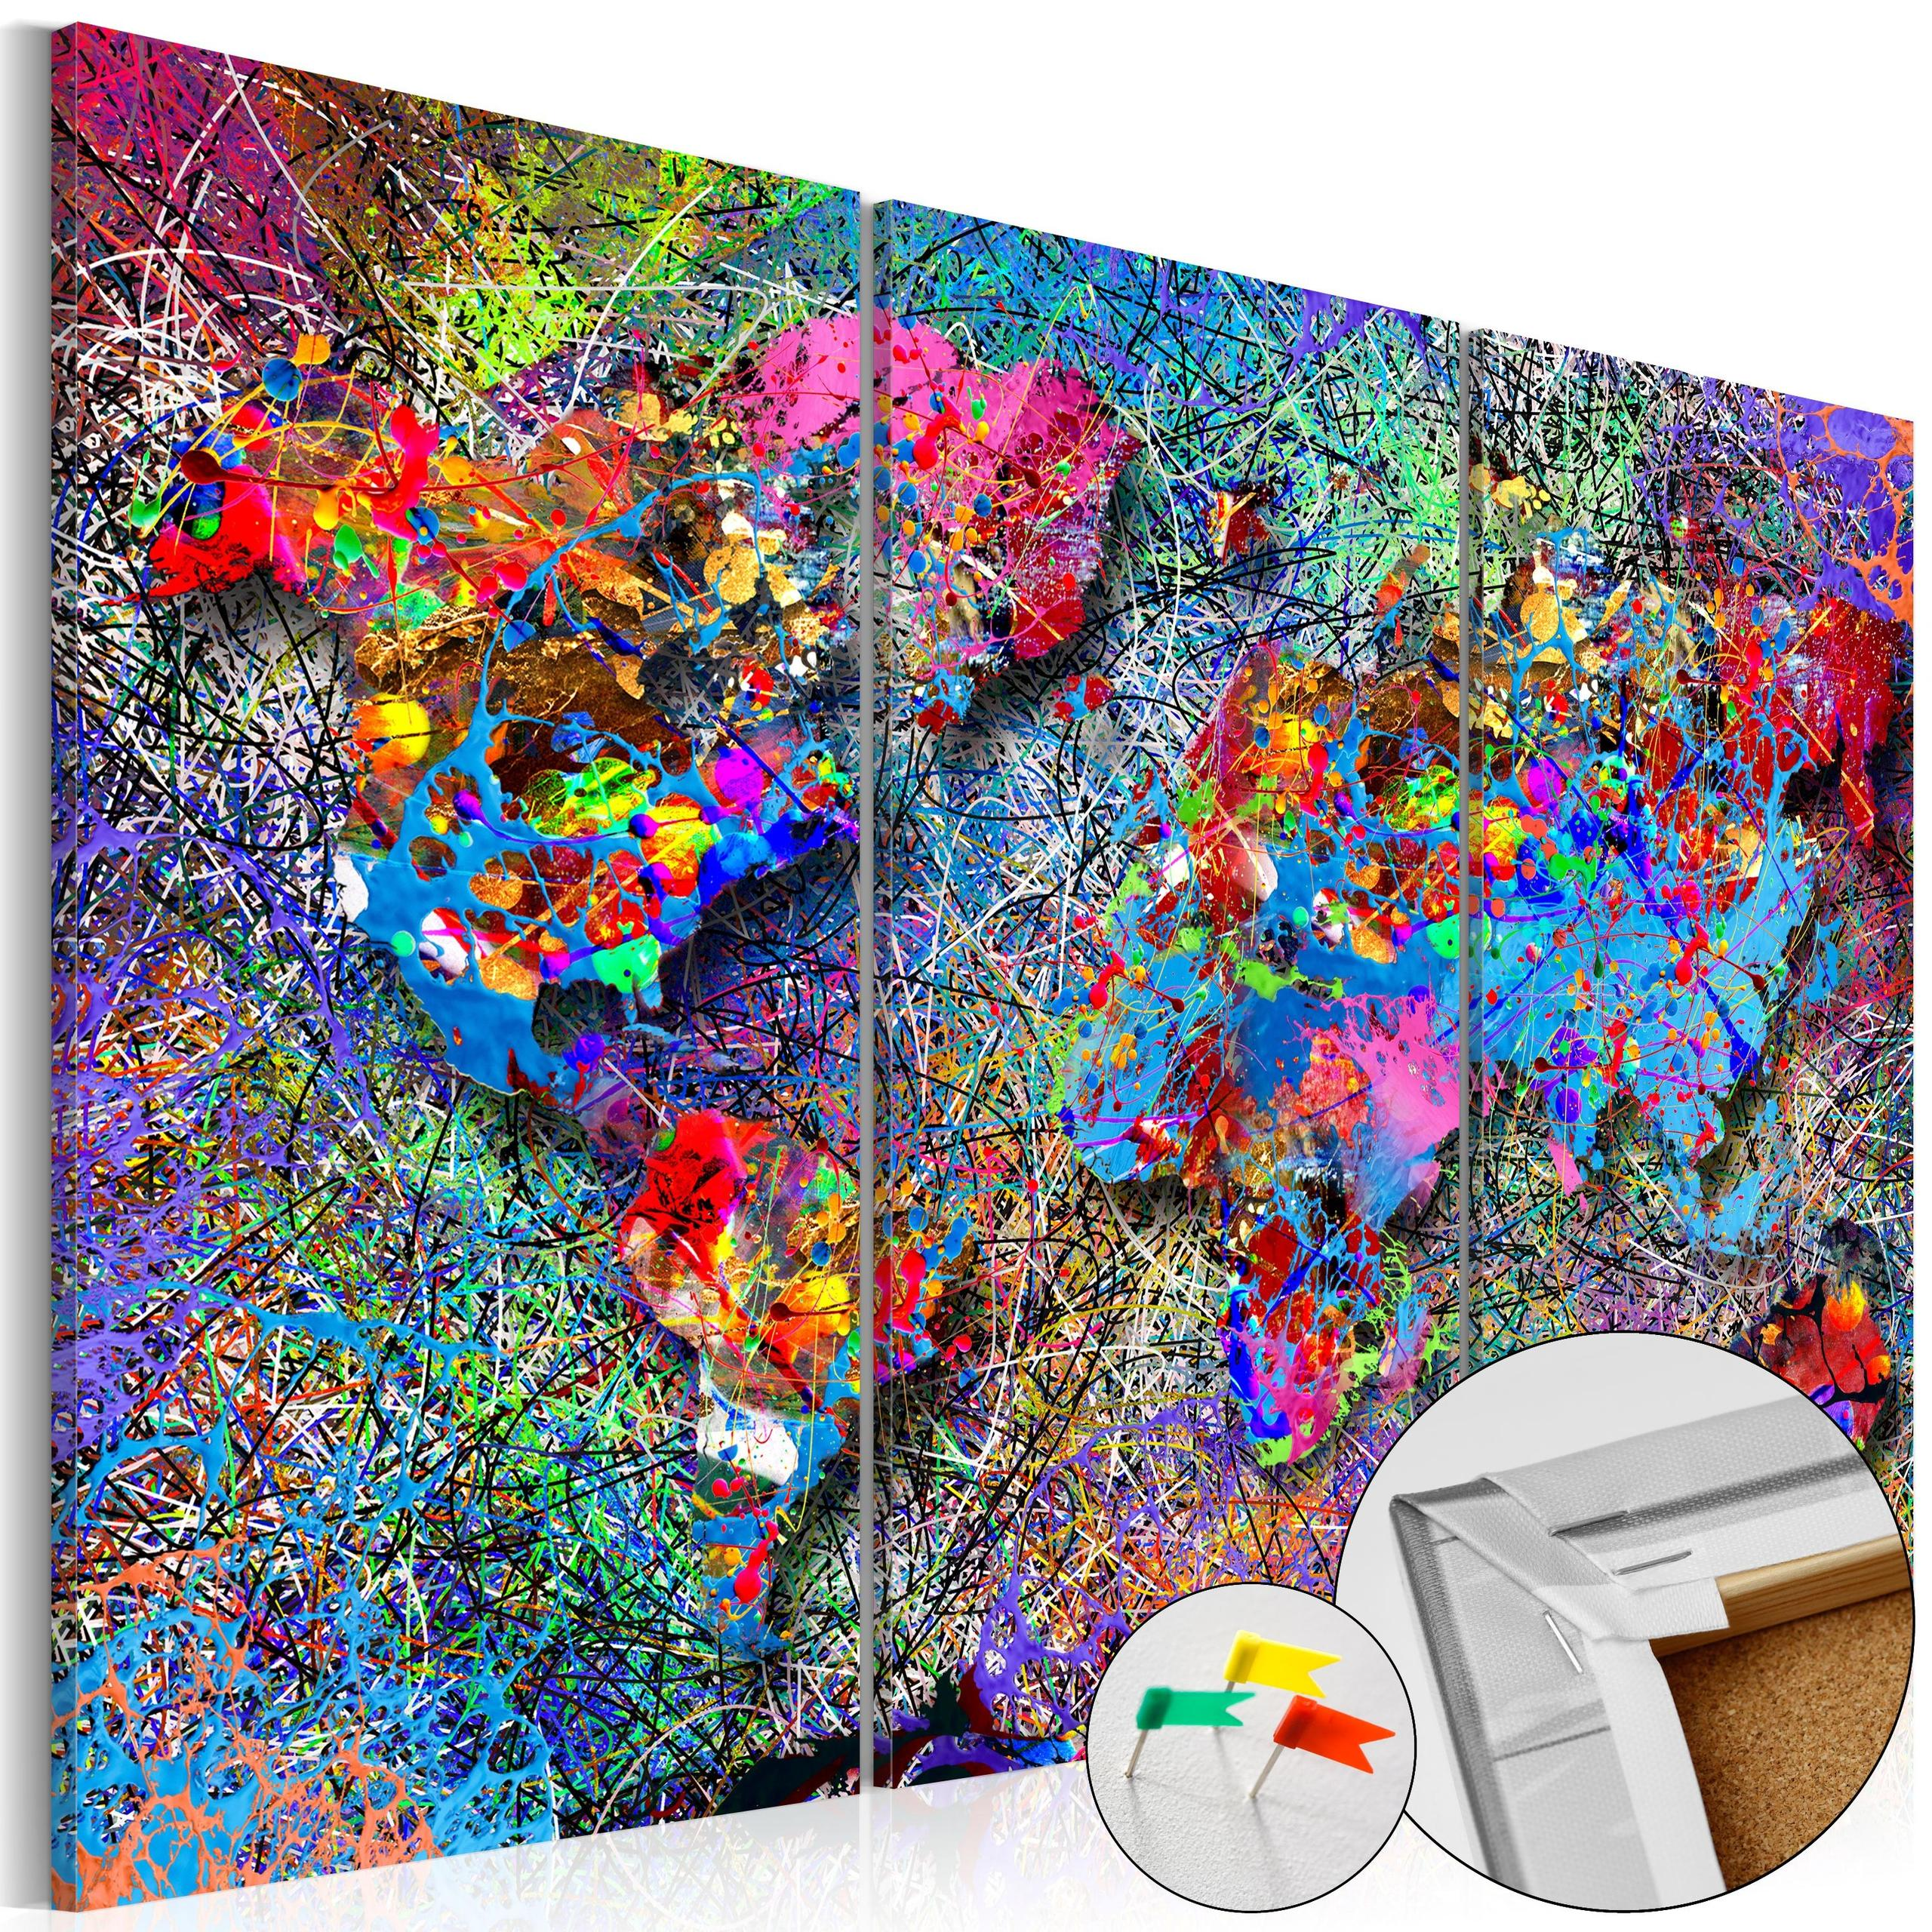 Quadro Di Sughero - Colourful Whirl [Cork Map] 120x80cm Erroi